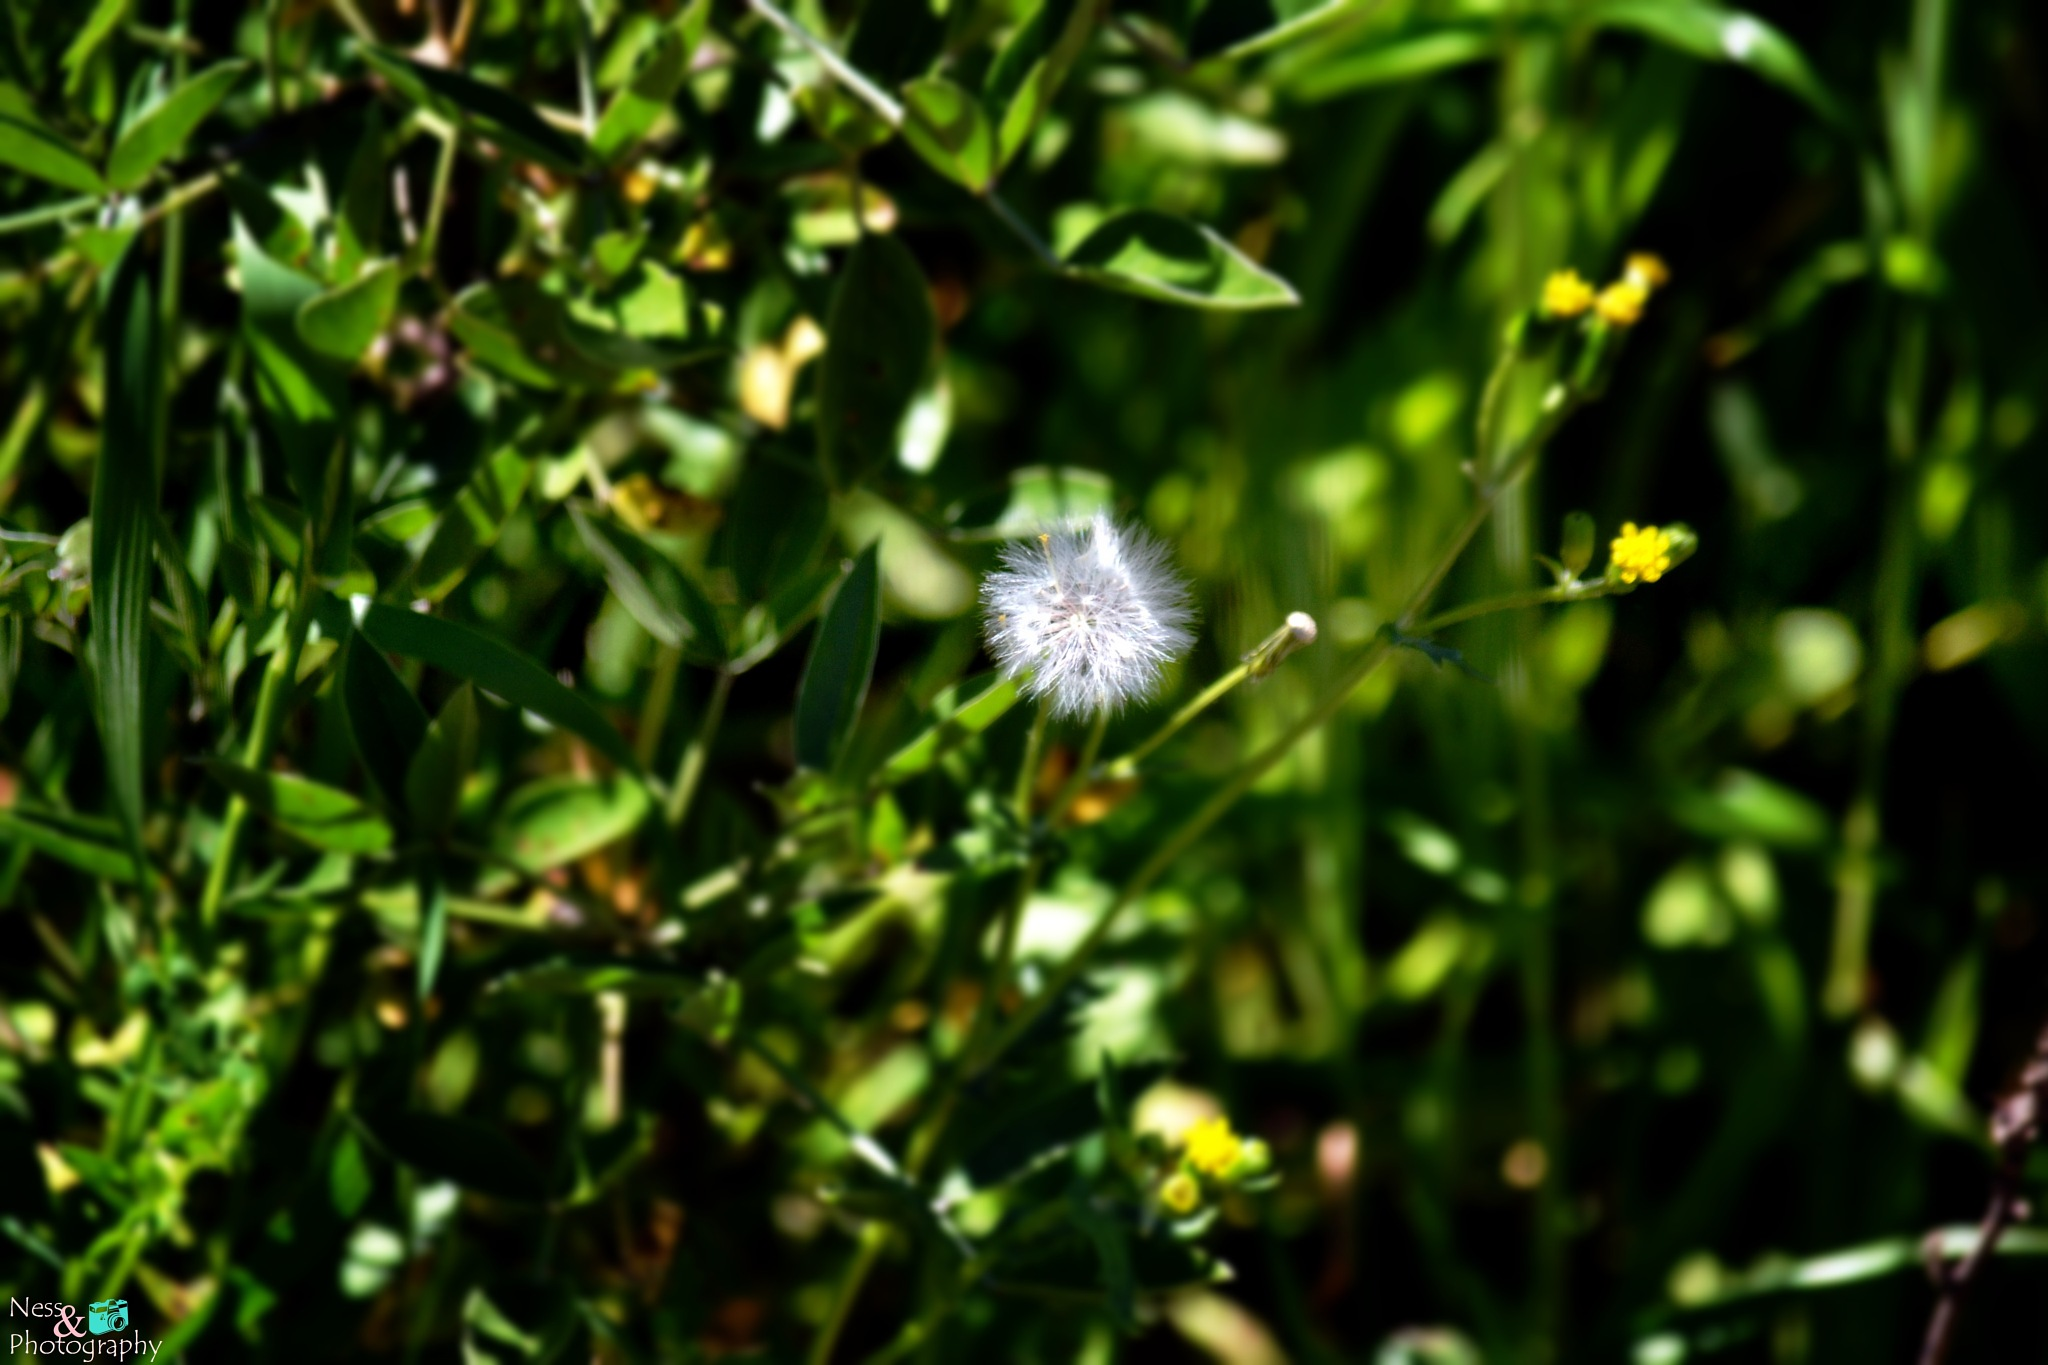 Dandelion by NessPhotography